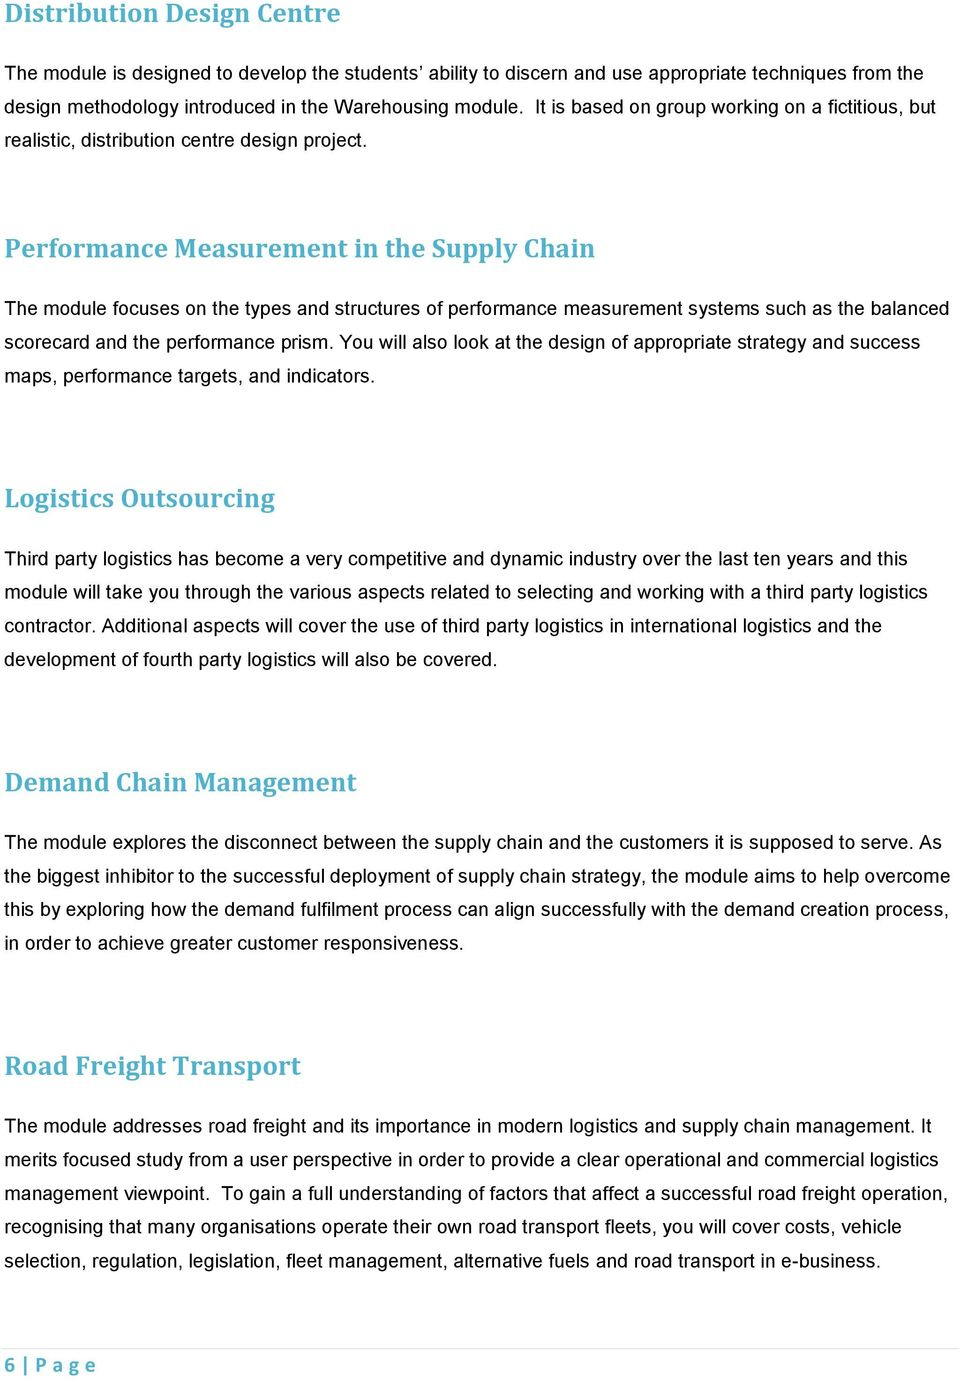 Performance Measurement in the Supply Chain The module focuses on the types and structures of performance measurement systems such as the balanced scorecard and the performance prism.